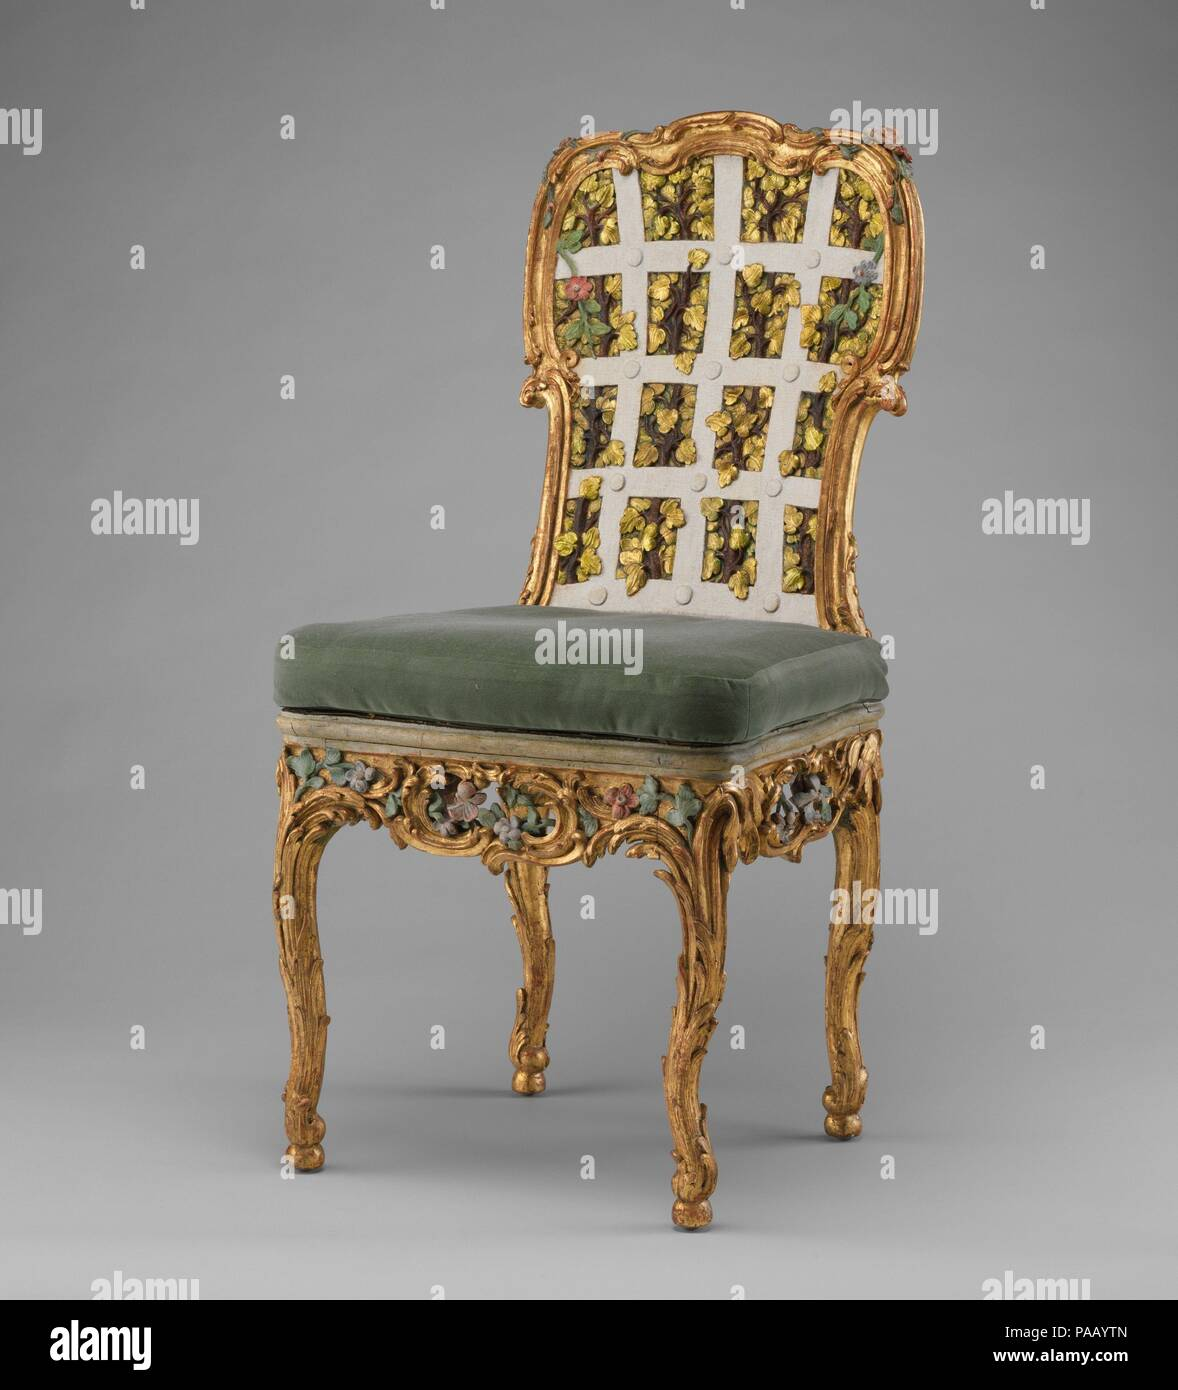 Side chair (one of four) (part of a set). Culture: German, Würzburg. Dimensions: 39 1/2 x 19 1/4 x 17 1/2 in. (100.3 x 48.9 x 44.5cm). Maker: Attributed to Johann Michael Bauer (German, Westheim 1710-1779 Bamberg). Date: ca. 1763-64.  The settees and chairs illustrated here (see 1974.356.114-.121) were made for the Franckenstein Pavilion in the gardens of Seehof Castle near Bamberg, one of the three summer residences in Southern Germany used by Adam Friedrich von Seinsheim, prince bishop of Würzberg and Bamberg. A true garden enthusiast, it was under von Seinsheim that the gardens of Seehof we - Stock Image